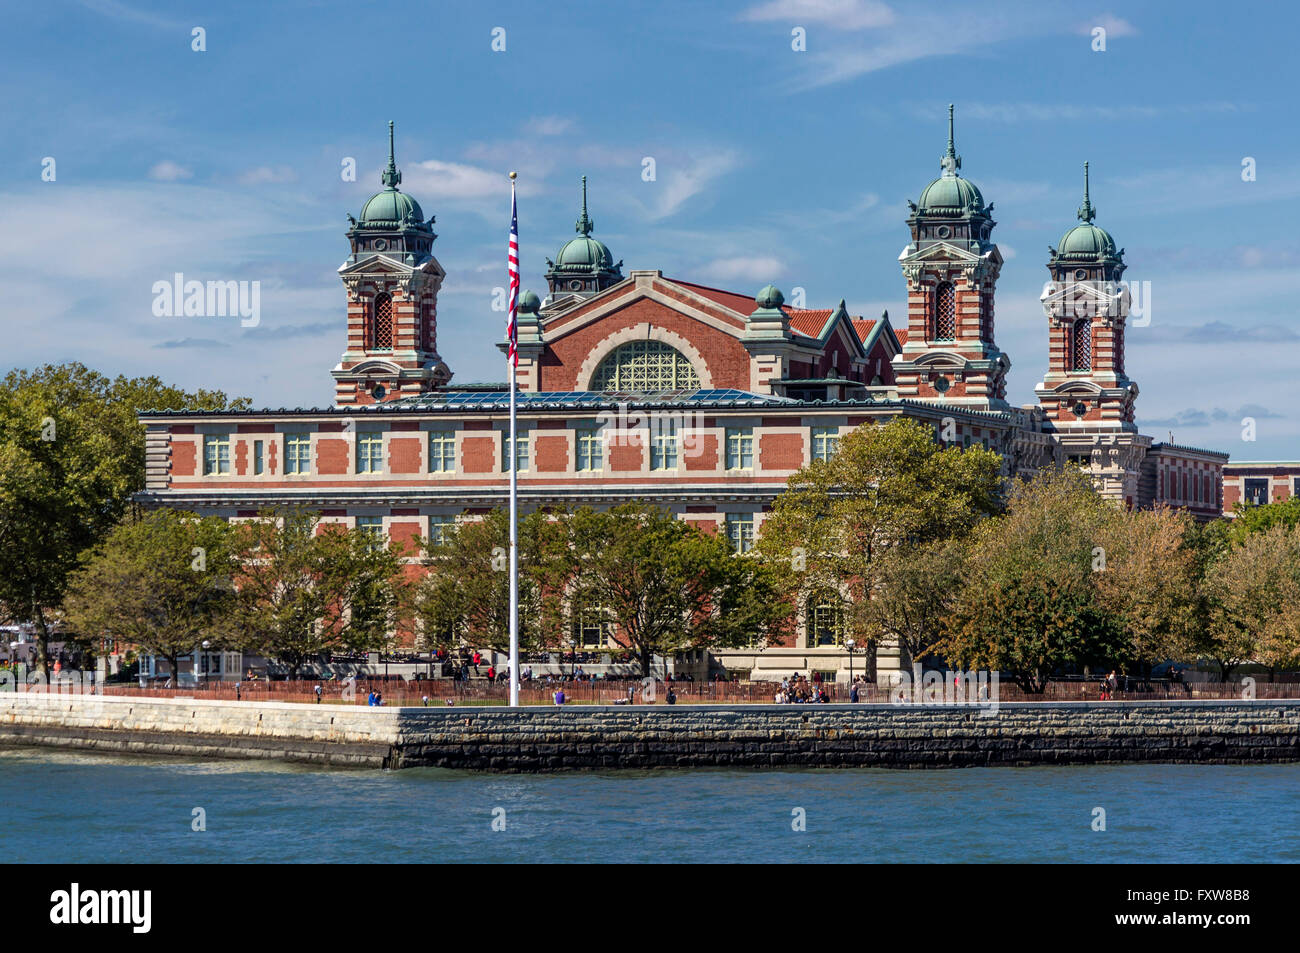 Ellis Island, the symbol of American immigration and the immigrants, New York City. USA - Stock Image